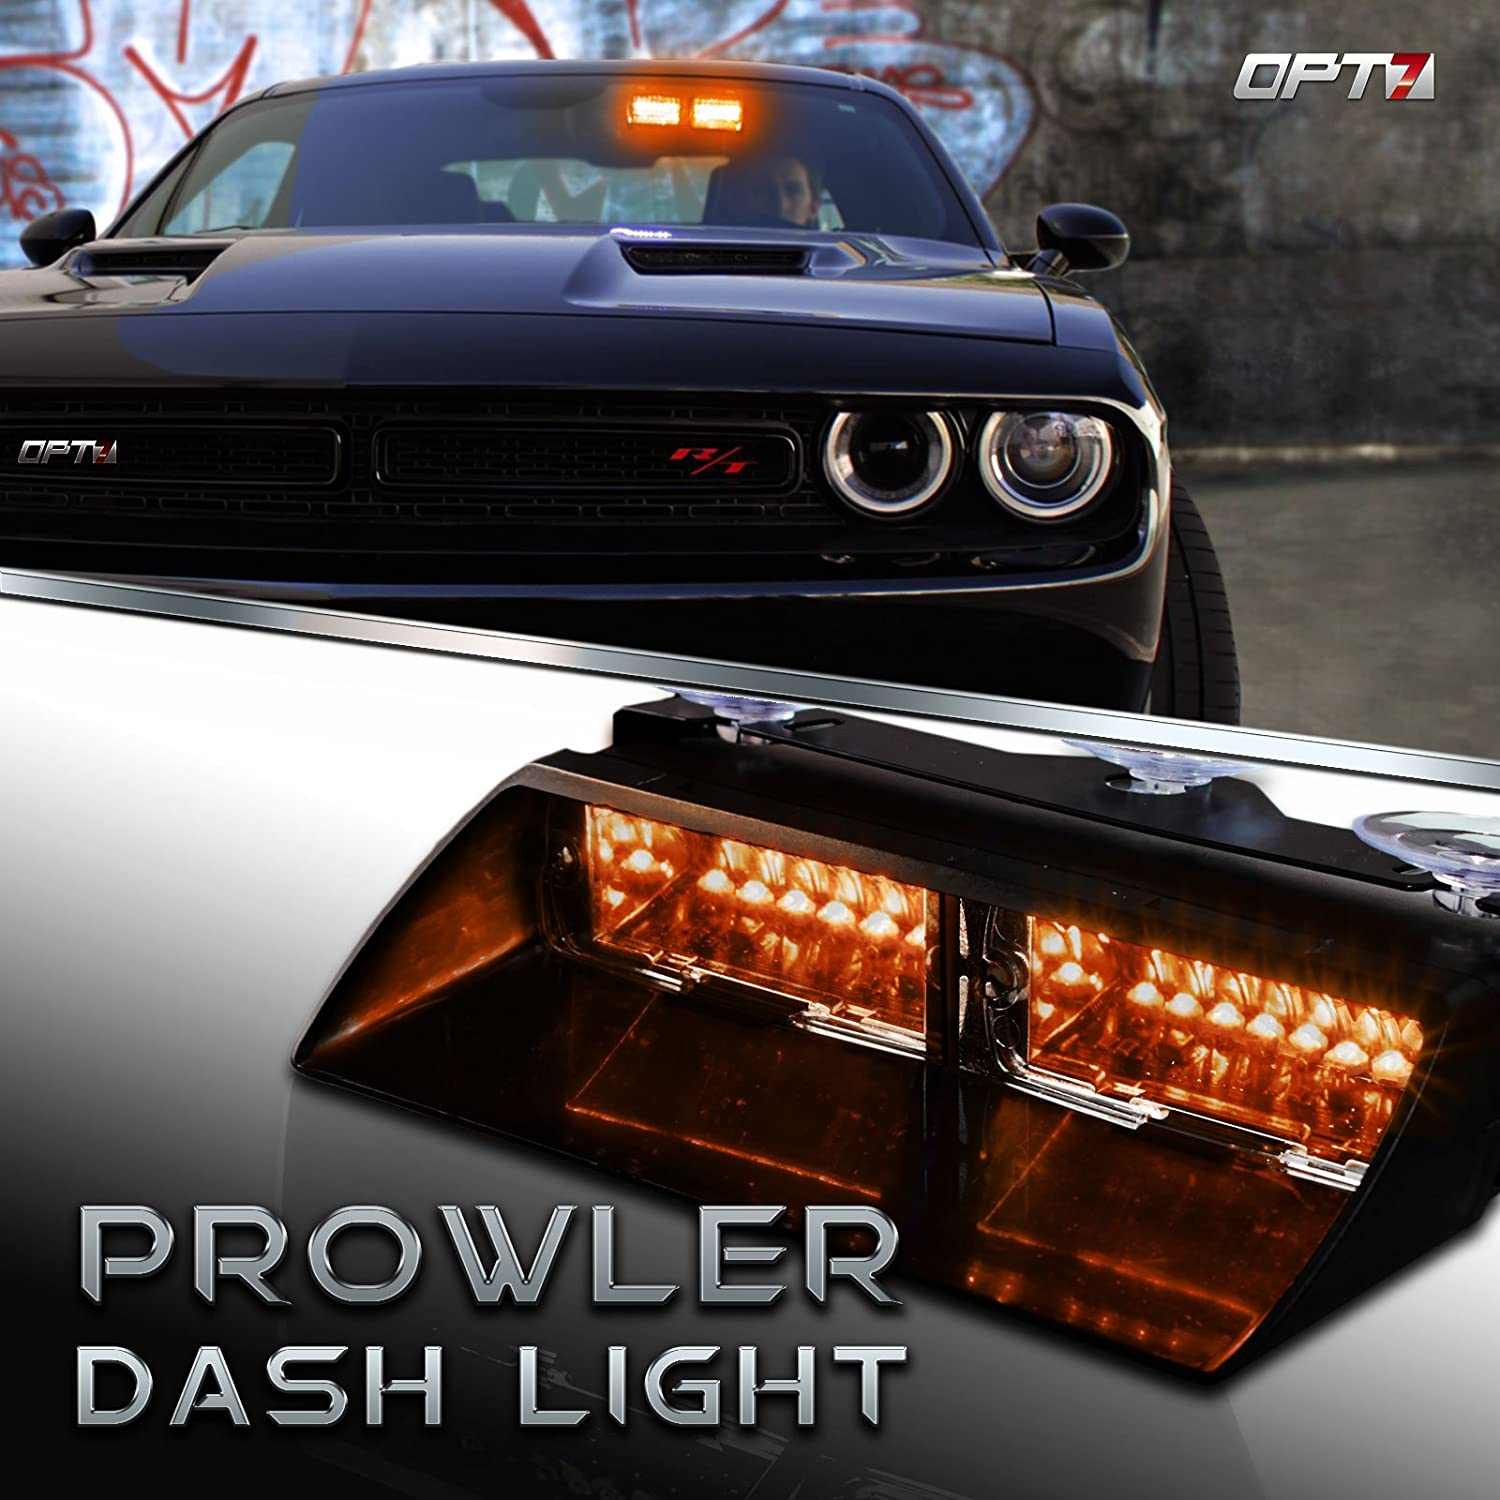 Prowler Emergency Dash Light - True Visible Strob Ranking TOP3 Daytime 18 Beauty products LED